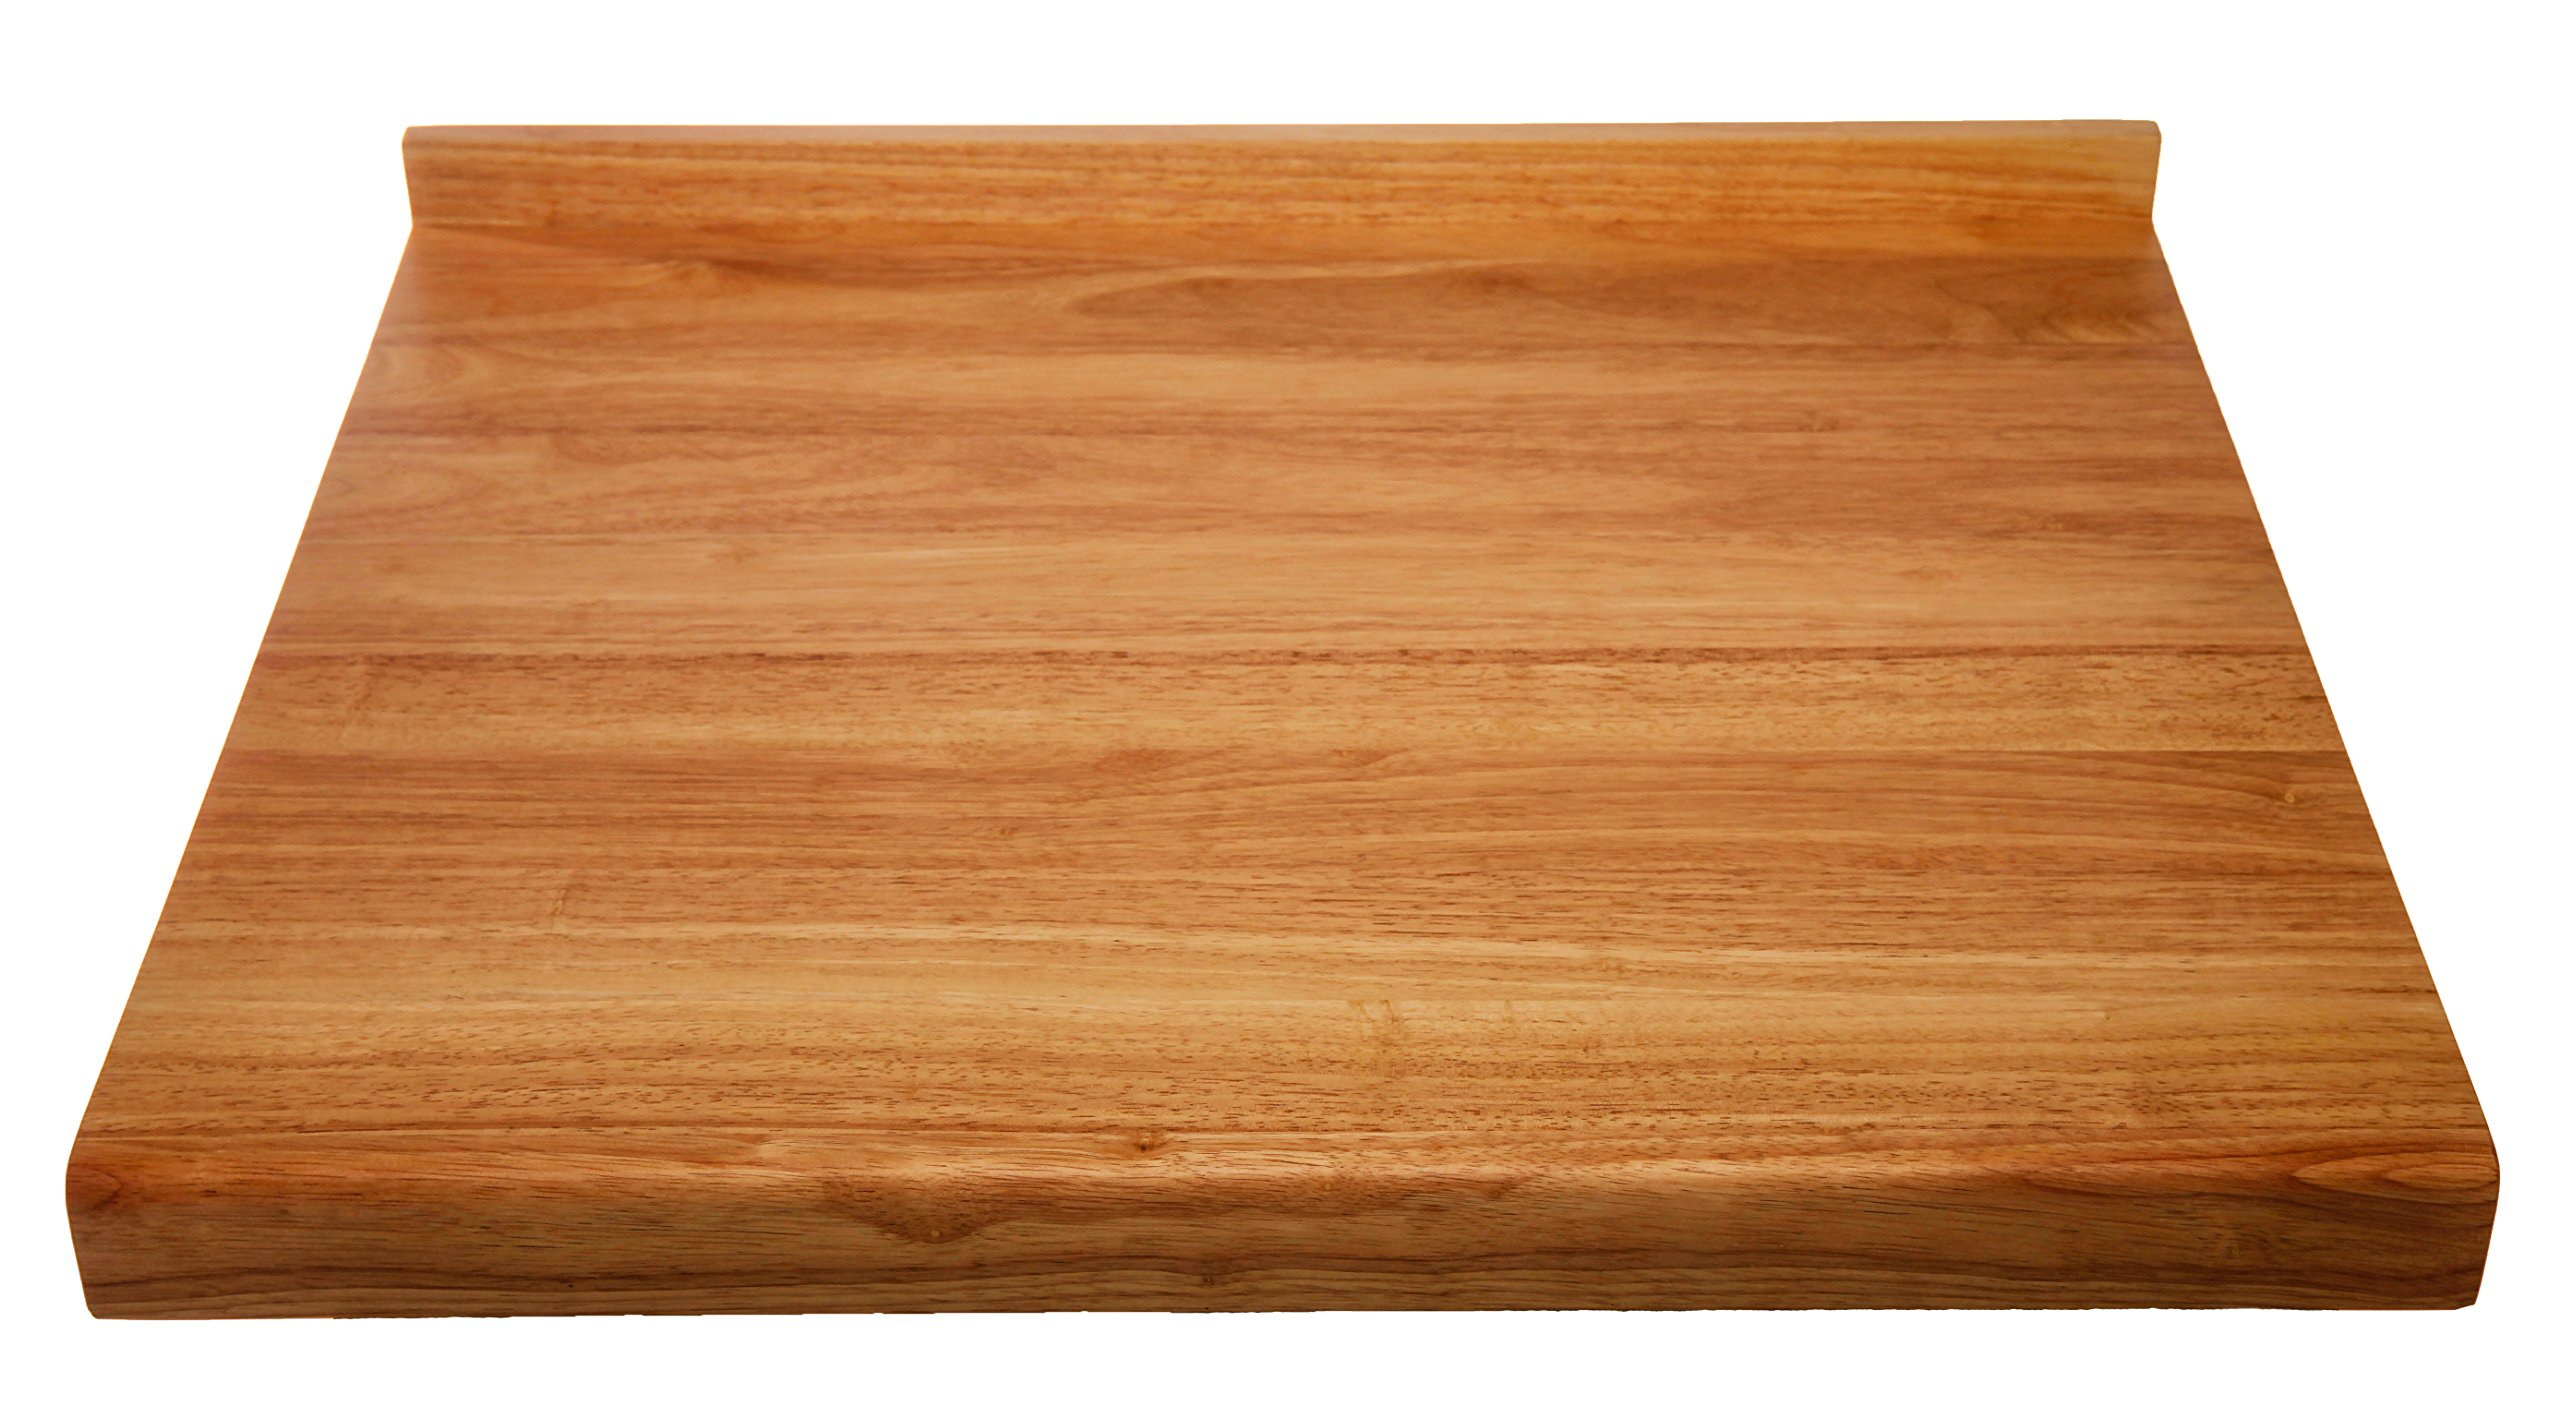 Baking/Pastry Prep Board - Reversible, Wood - 22'' x 28''